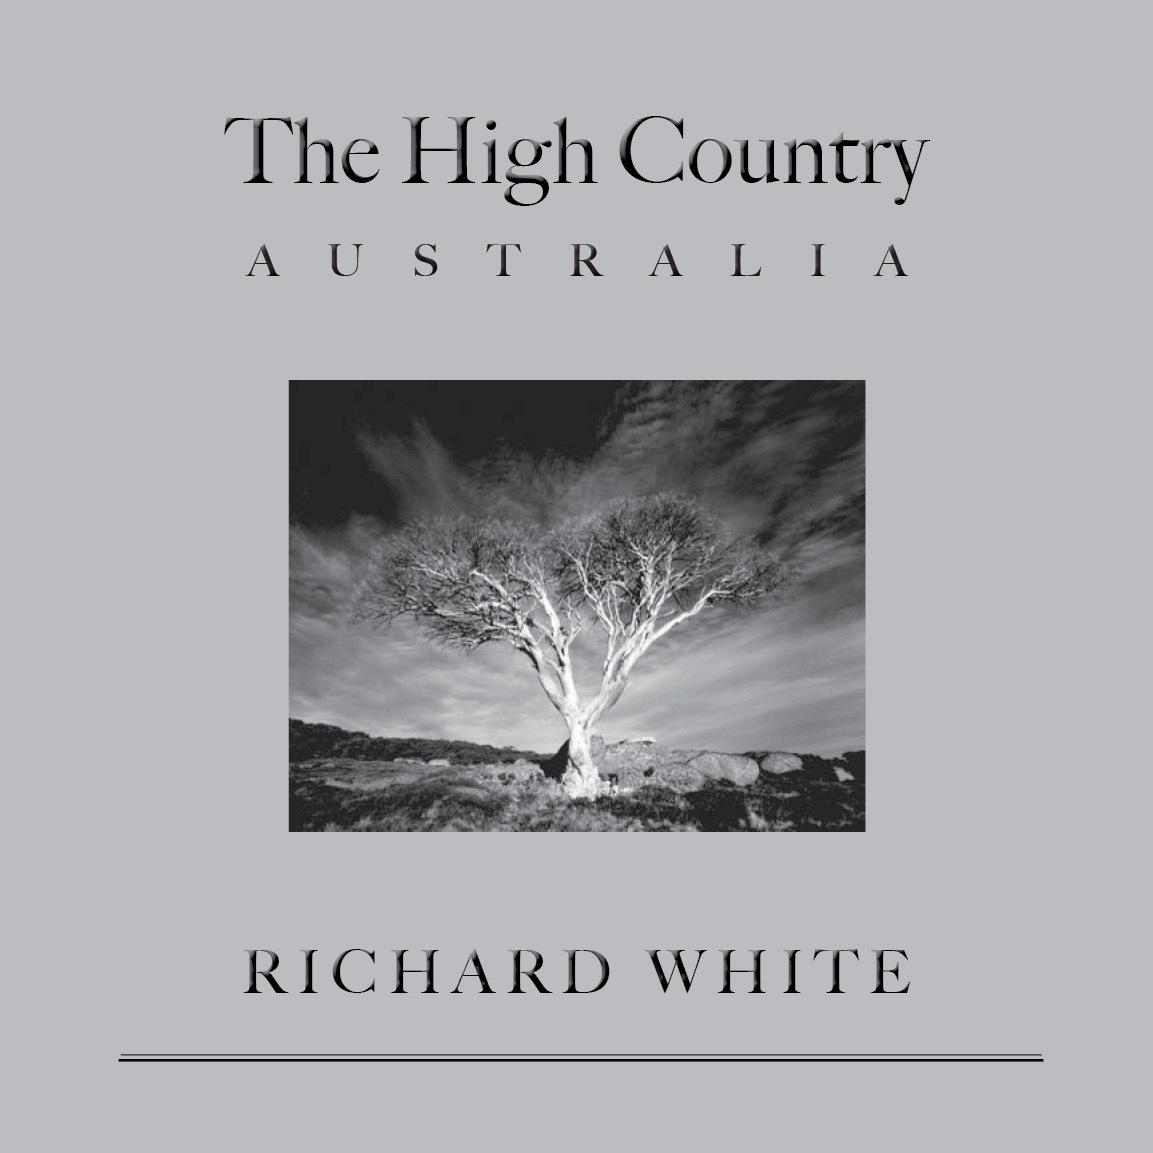 The High Country Australia